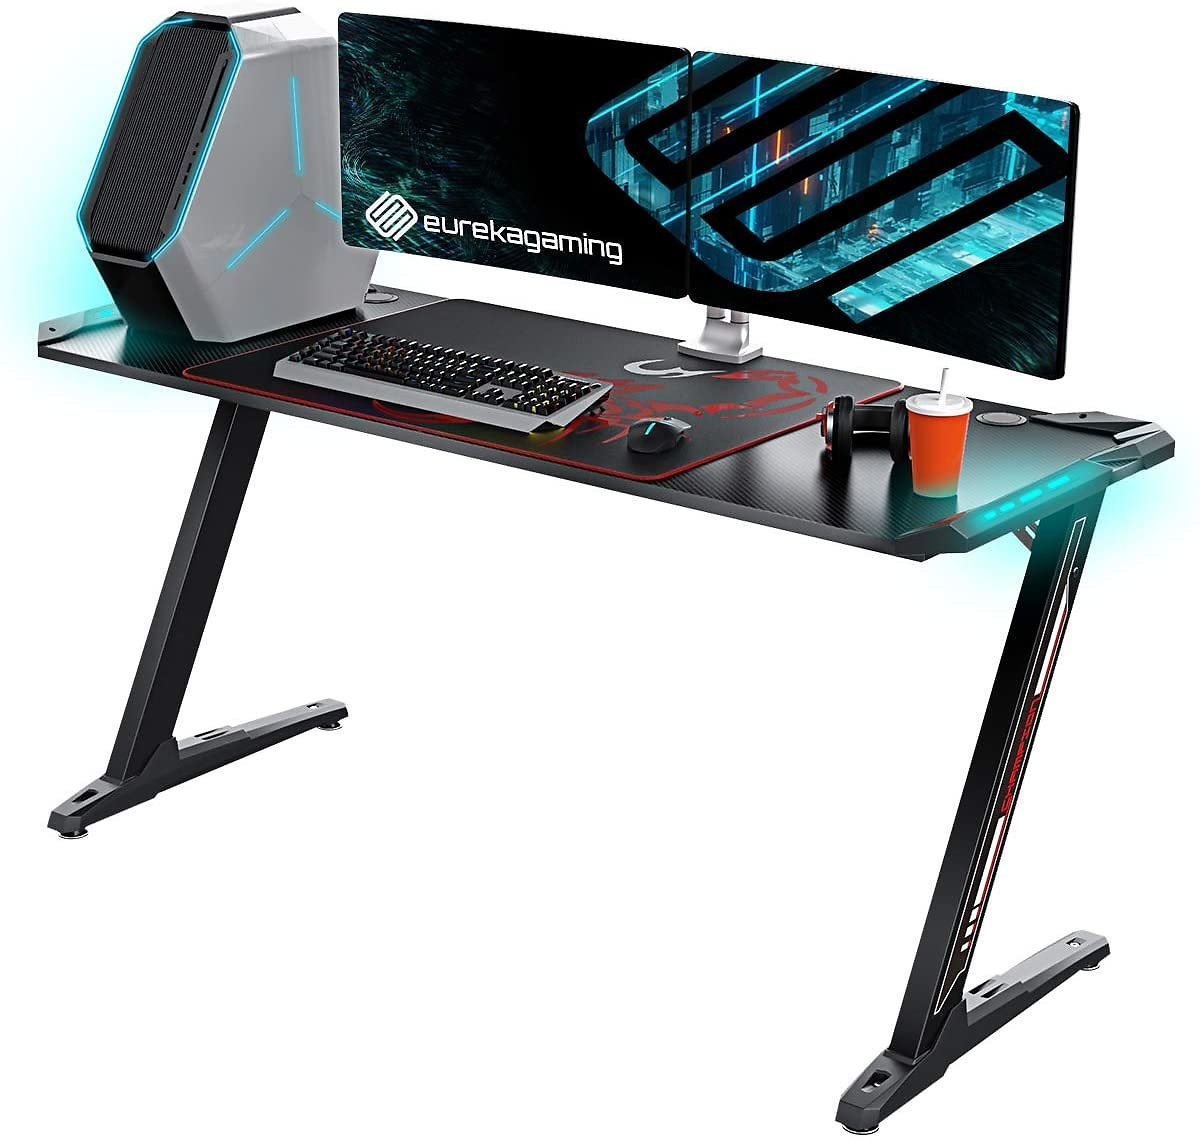 Z Shaped Large PC Computer Gaming Desks Tables with RGB LED Lights Controller Stand and Mouse Pad